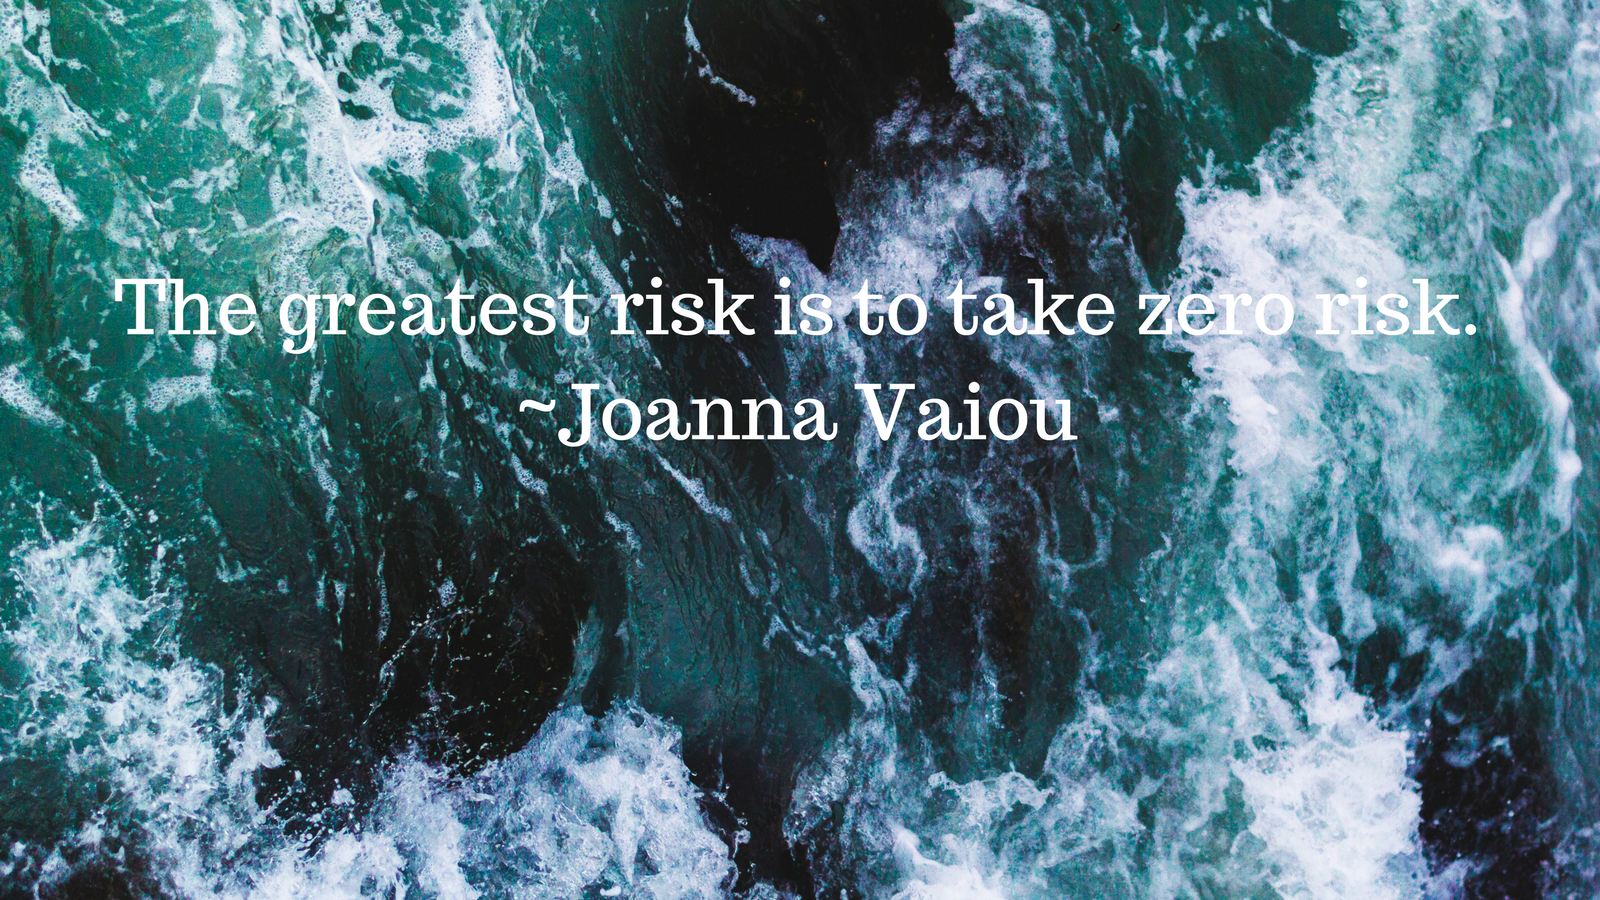 1600-x-900-The-greatest-risk-is-to-take-zero-risk._Joanna-Vaiou.png?mtime=20180419125112#asset:84035